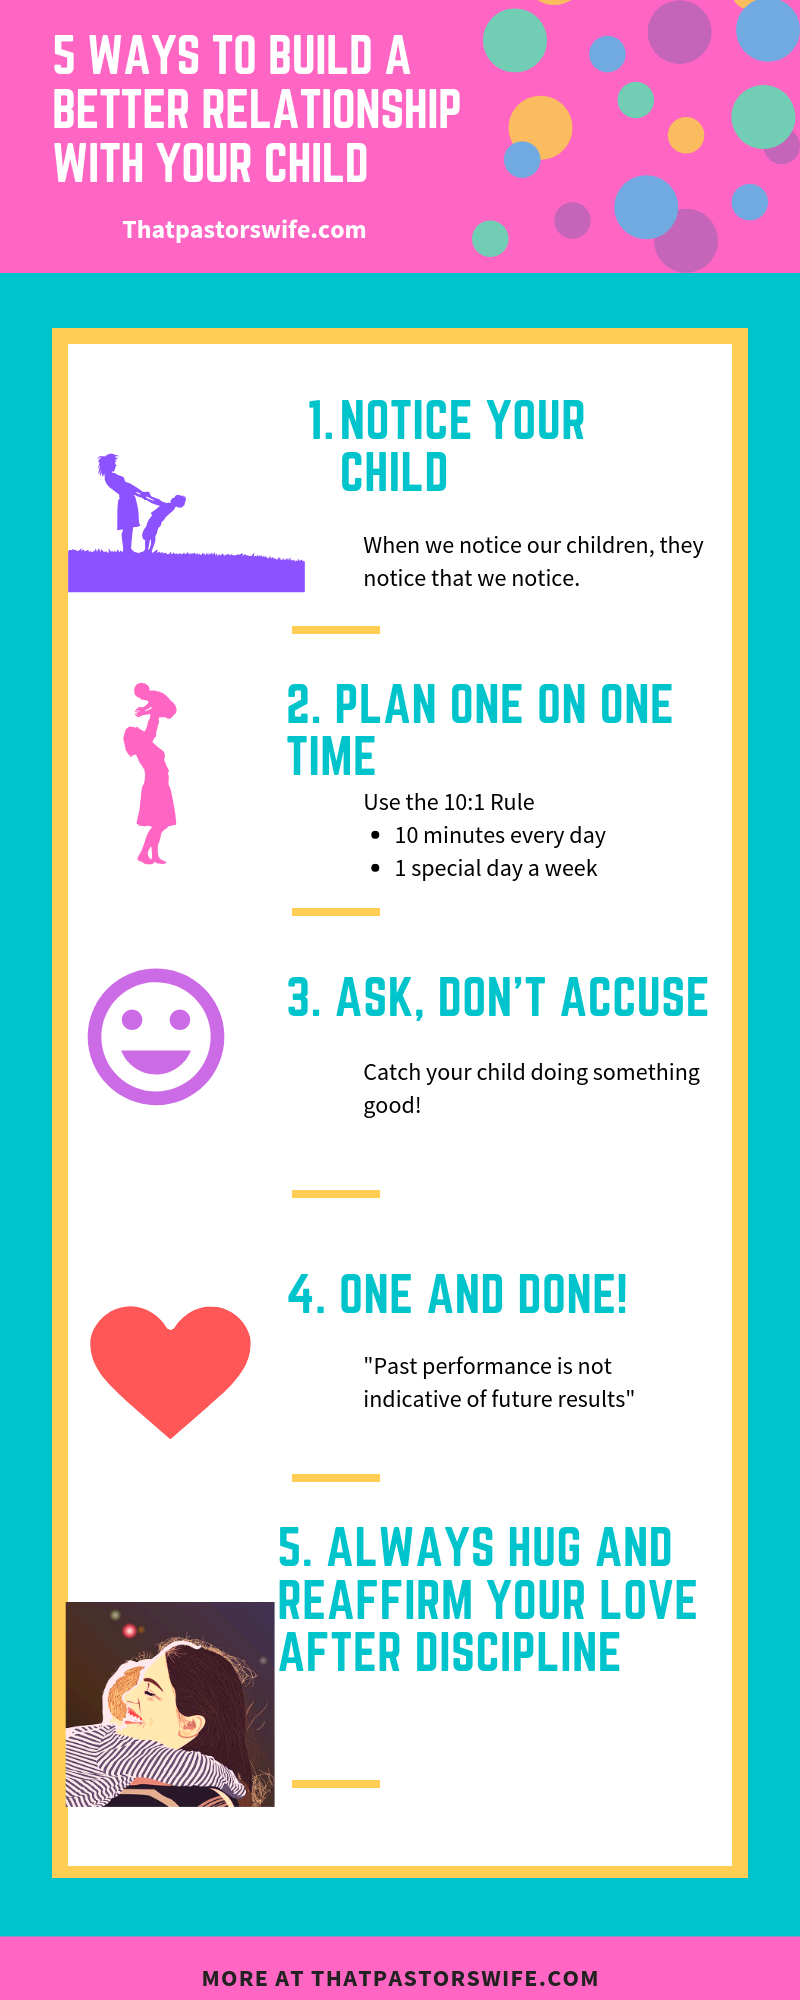 5 ways to build a better relationship with your child